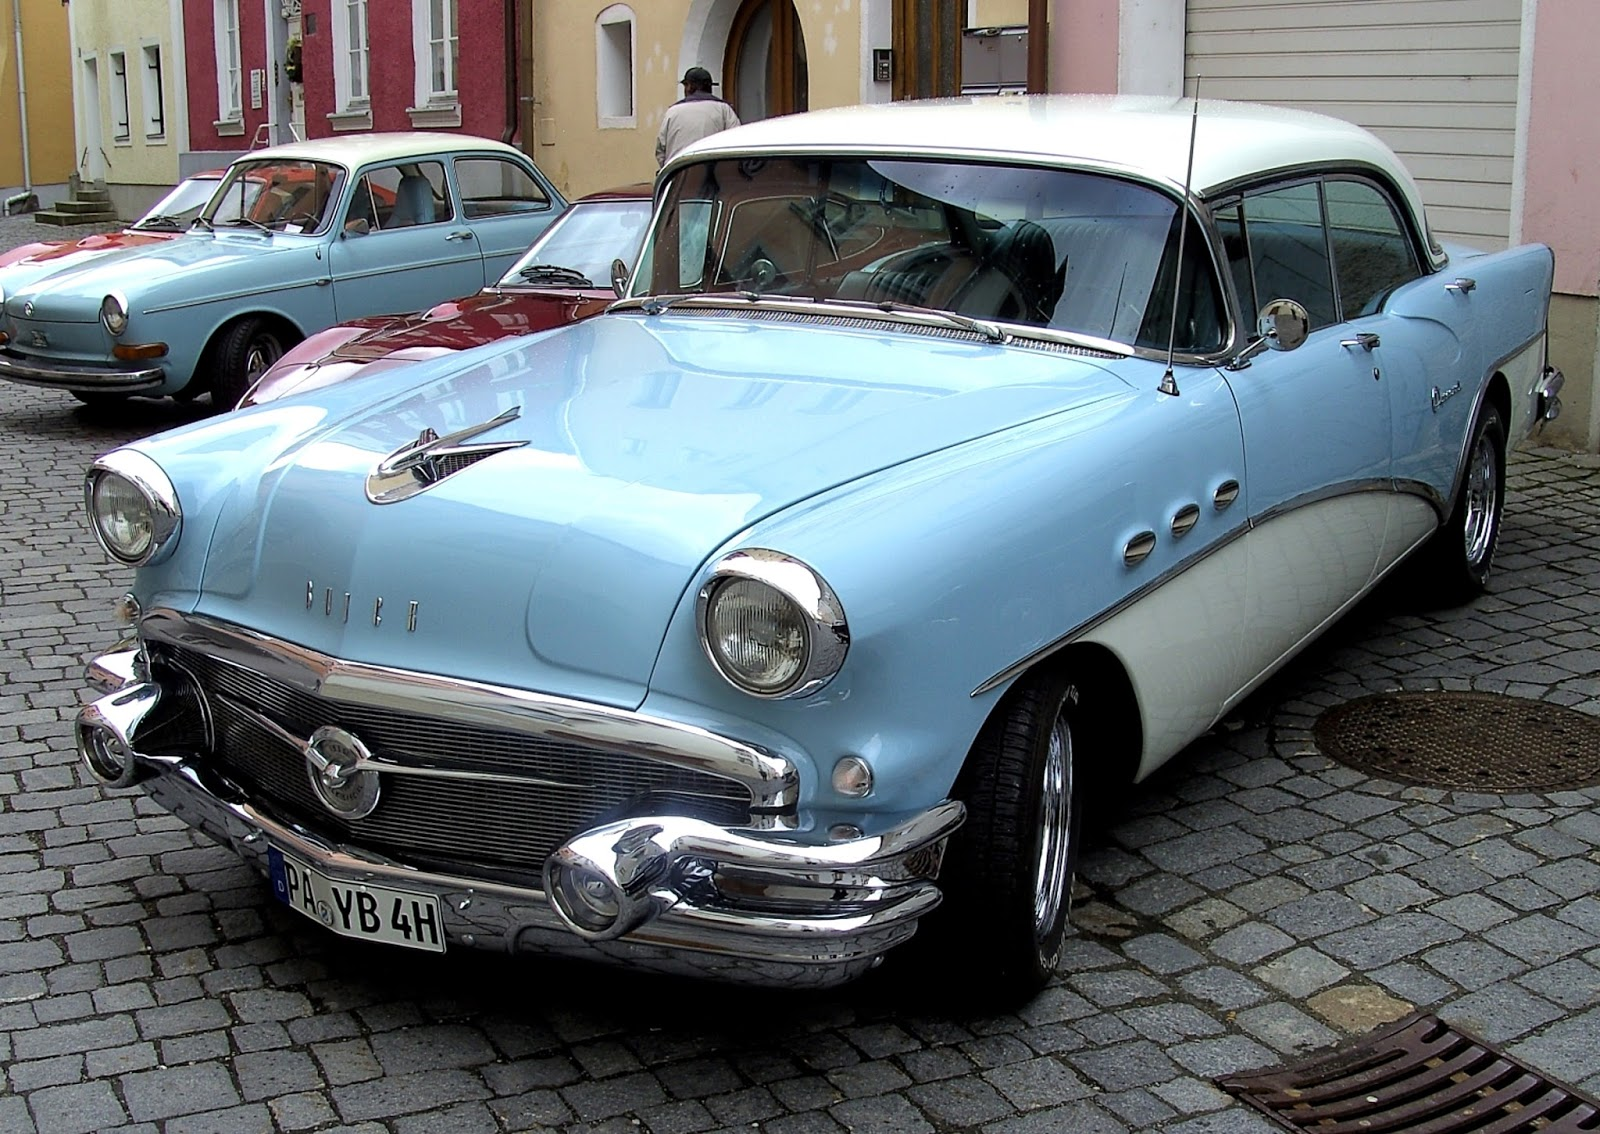 Vintage Car: Automobile Brand's Of The Past..,: Two-Tone Cars Of The